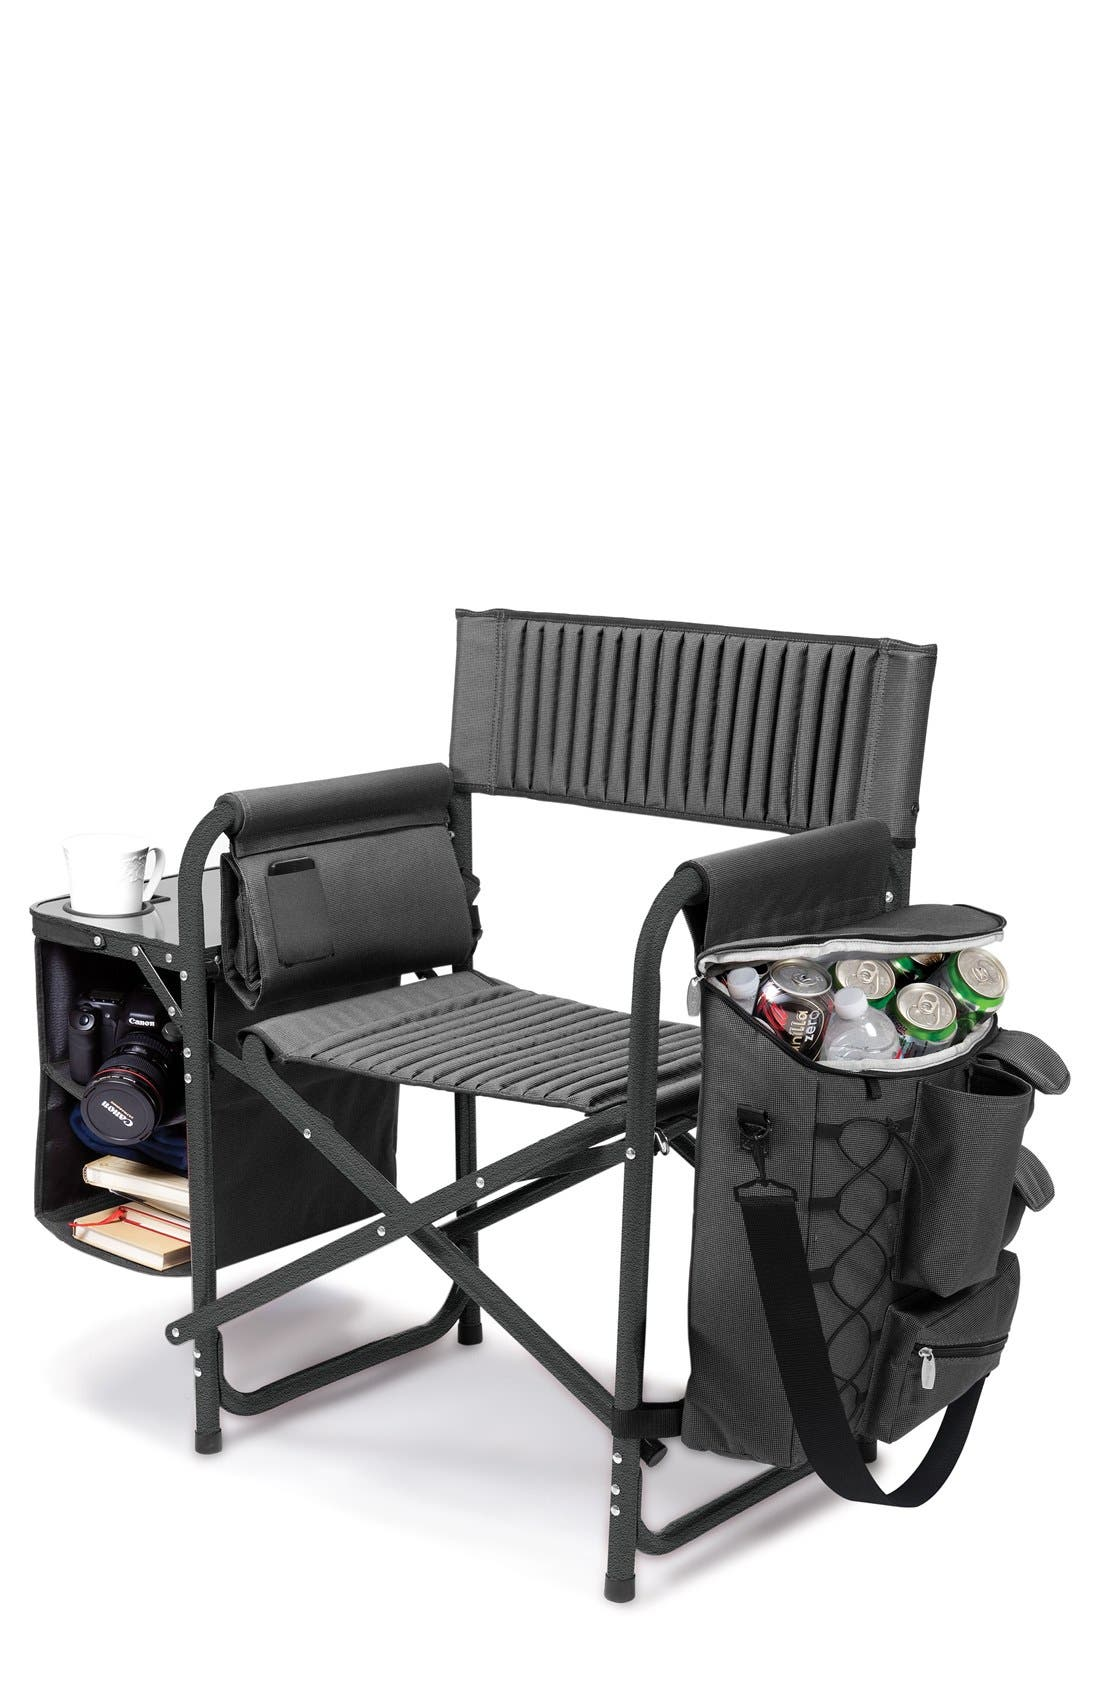 ONIVA Fusion Lawn Chair,                         Main,                         color, BLACK